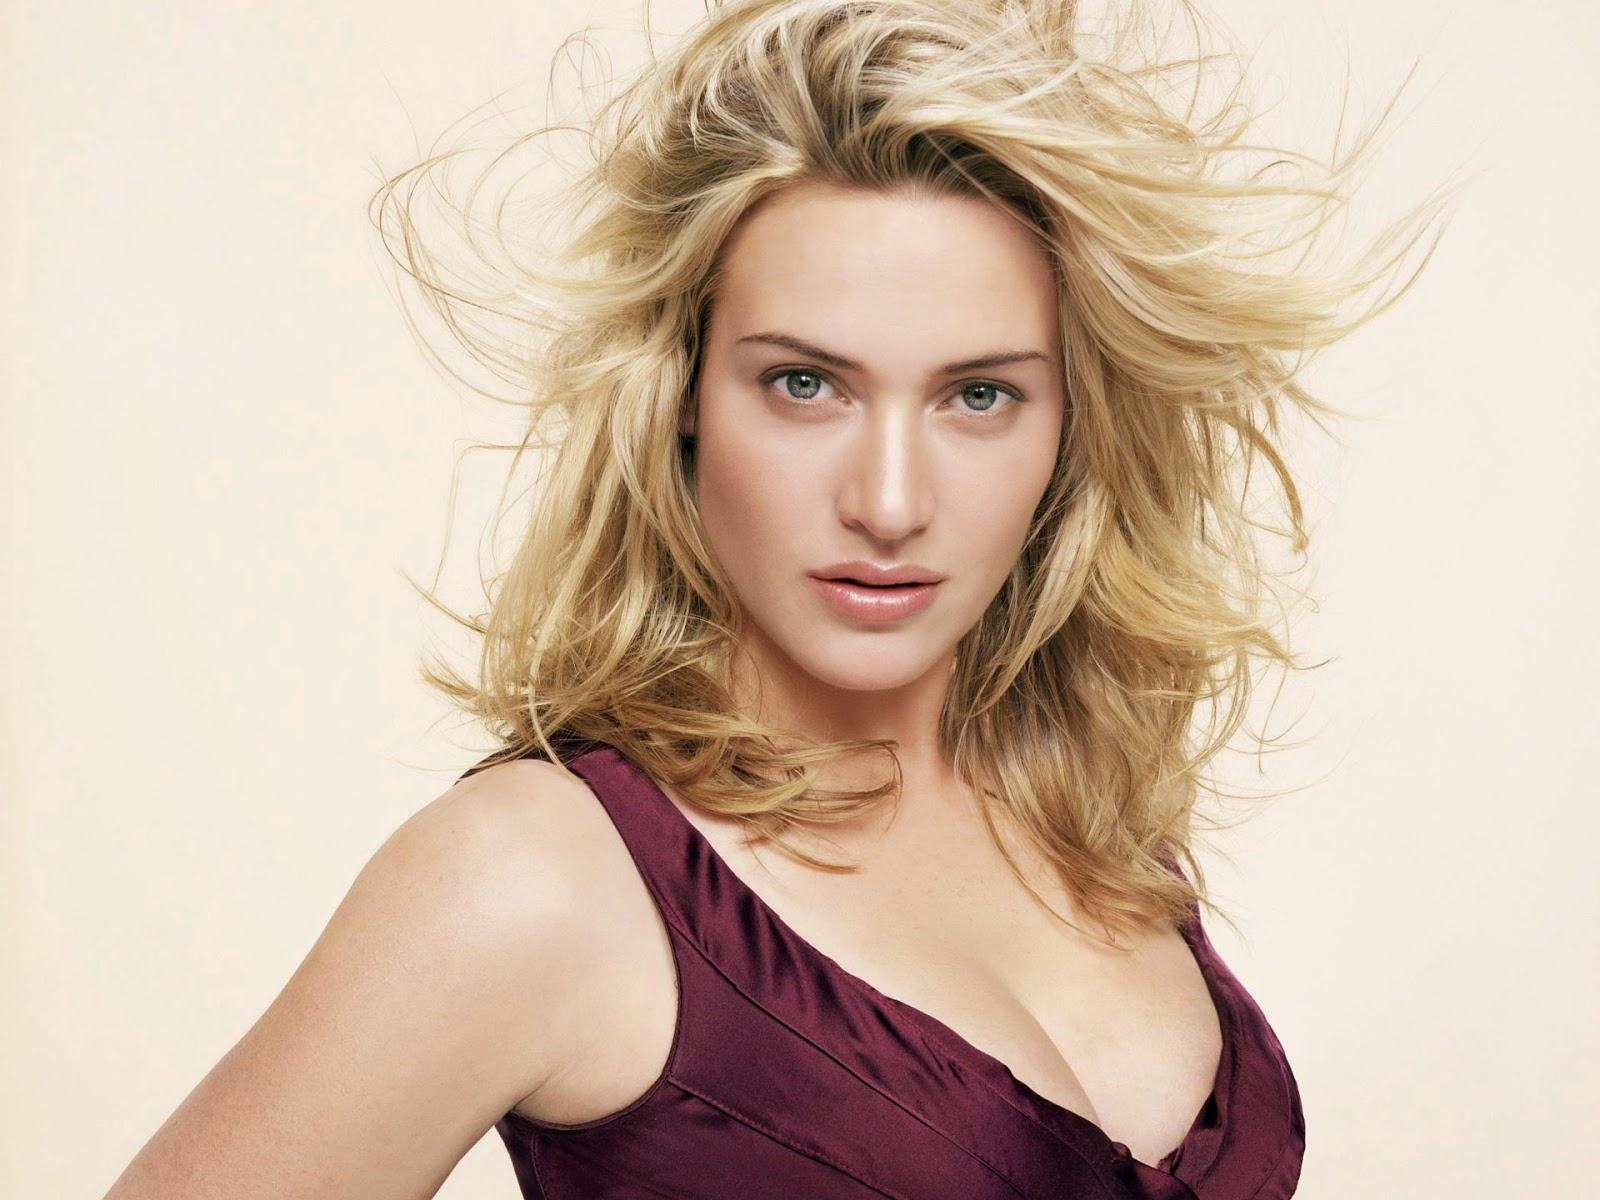 kate winslet esquire magazine wallpapers - Kate Winslet Esquire Magazine Wallpapers HD Wallpapers